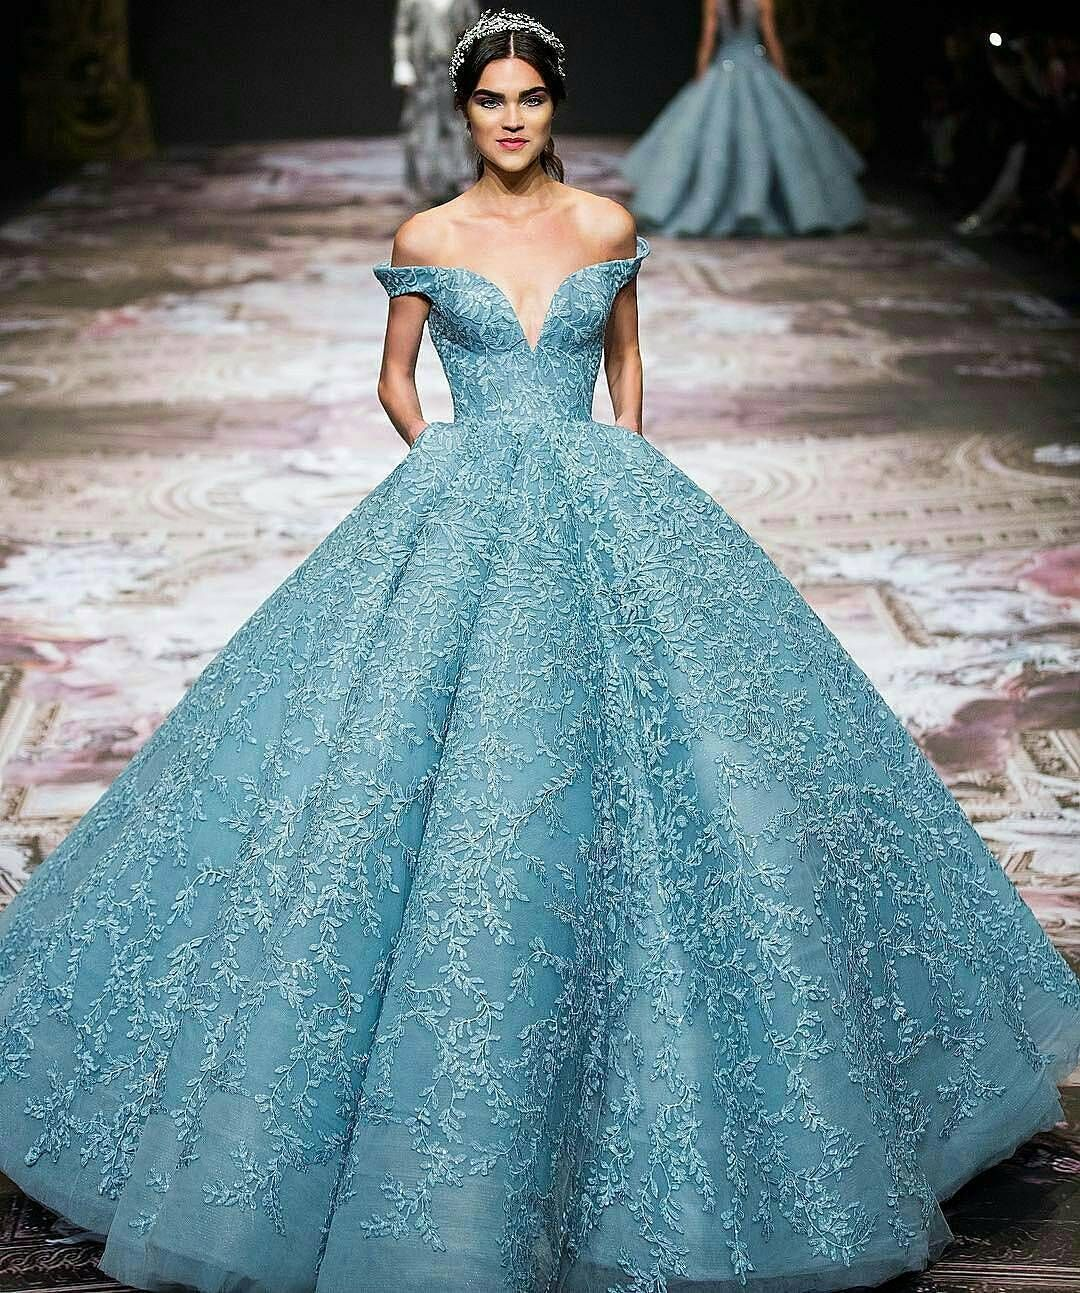 Inspired gown from @michael5inco http://gelinshop.com/ipost ...